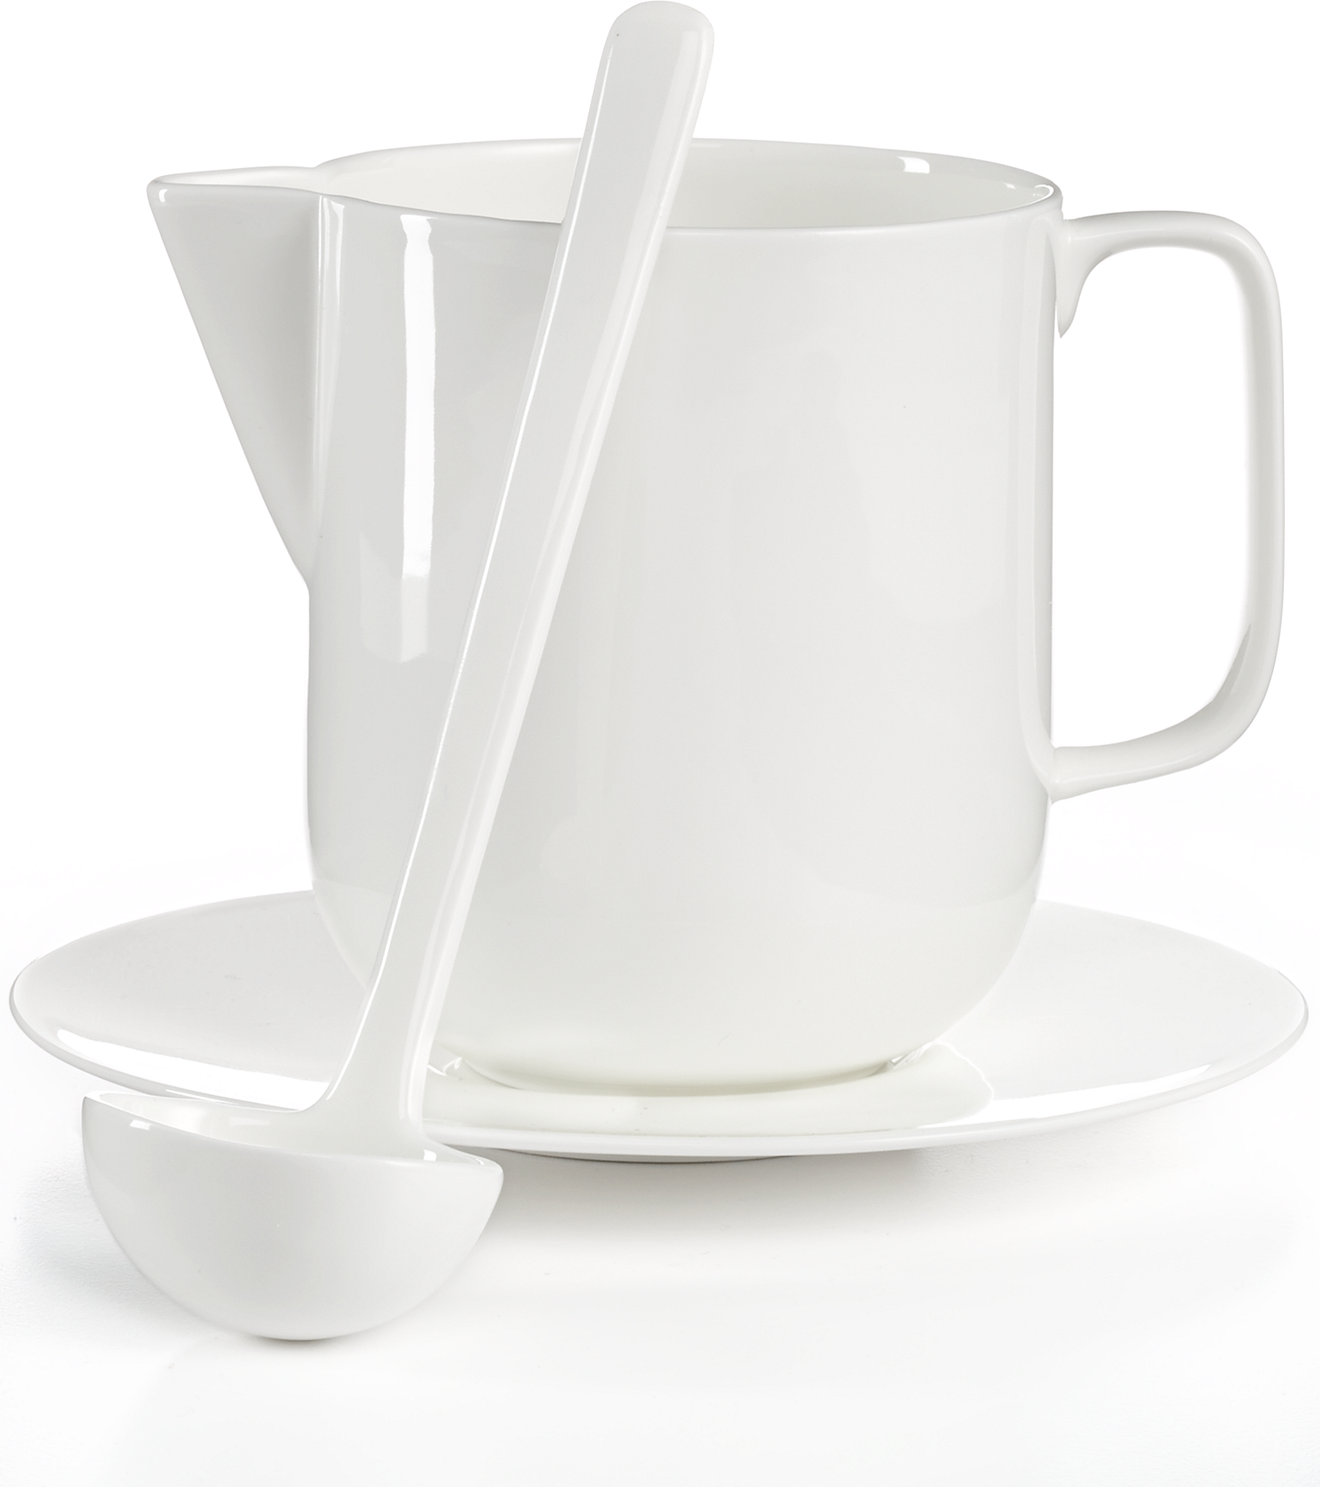 Hotel Sauce Pitcher Set - Serveware - Dining & Entertaining - Macy's Bridal and Wedding Registry